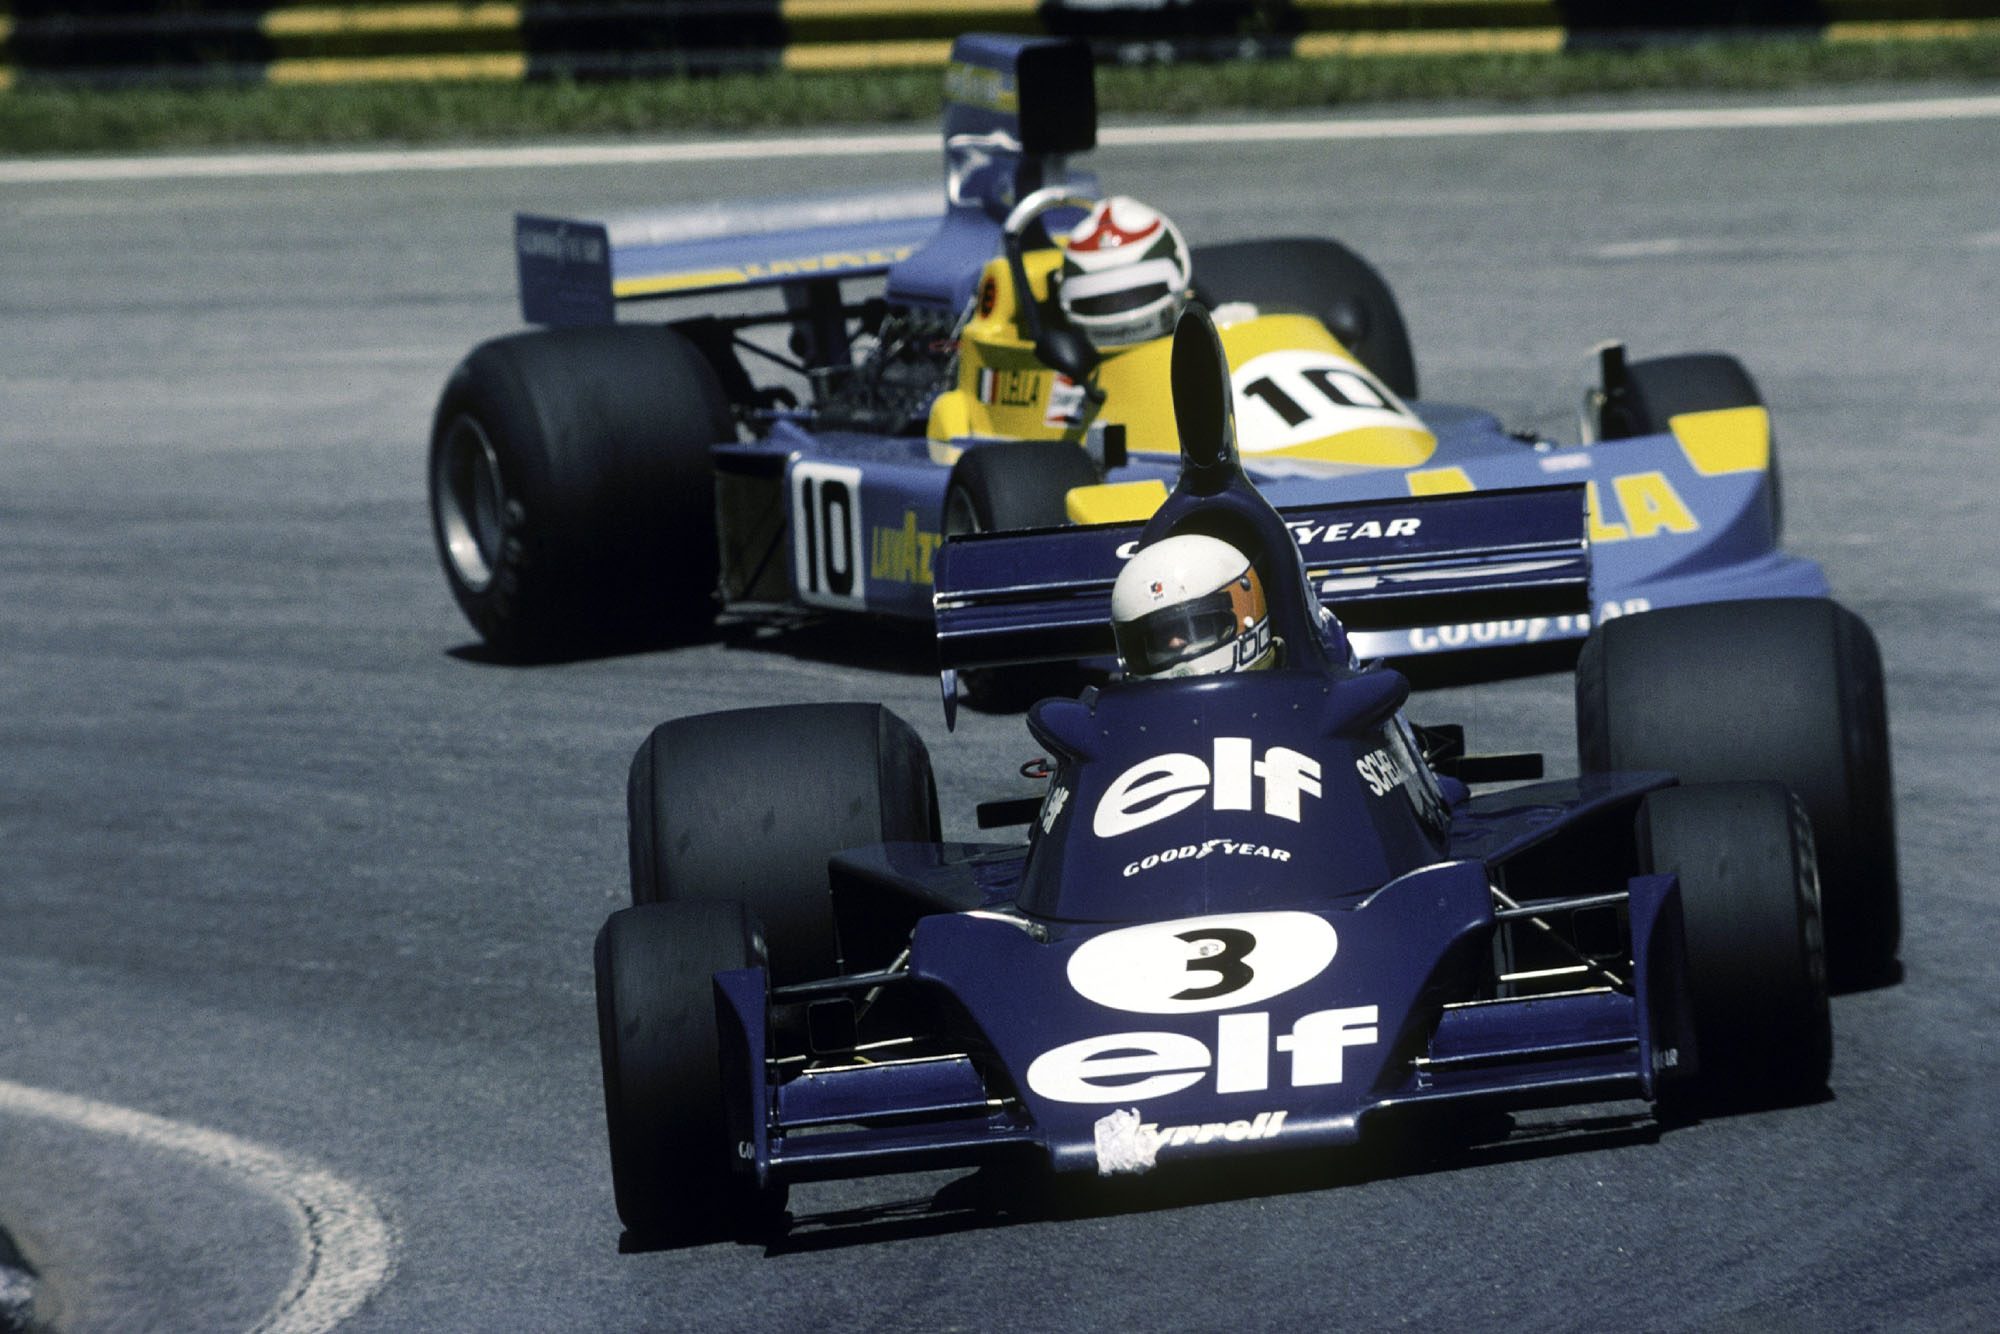 Jody Scheckter keeps his Tyrrell ahead of Lella Lombardi's March during the 1976 Brazilian Grand Prix.